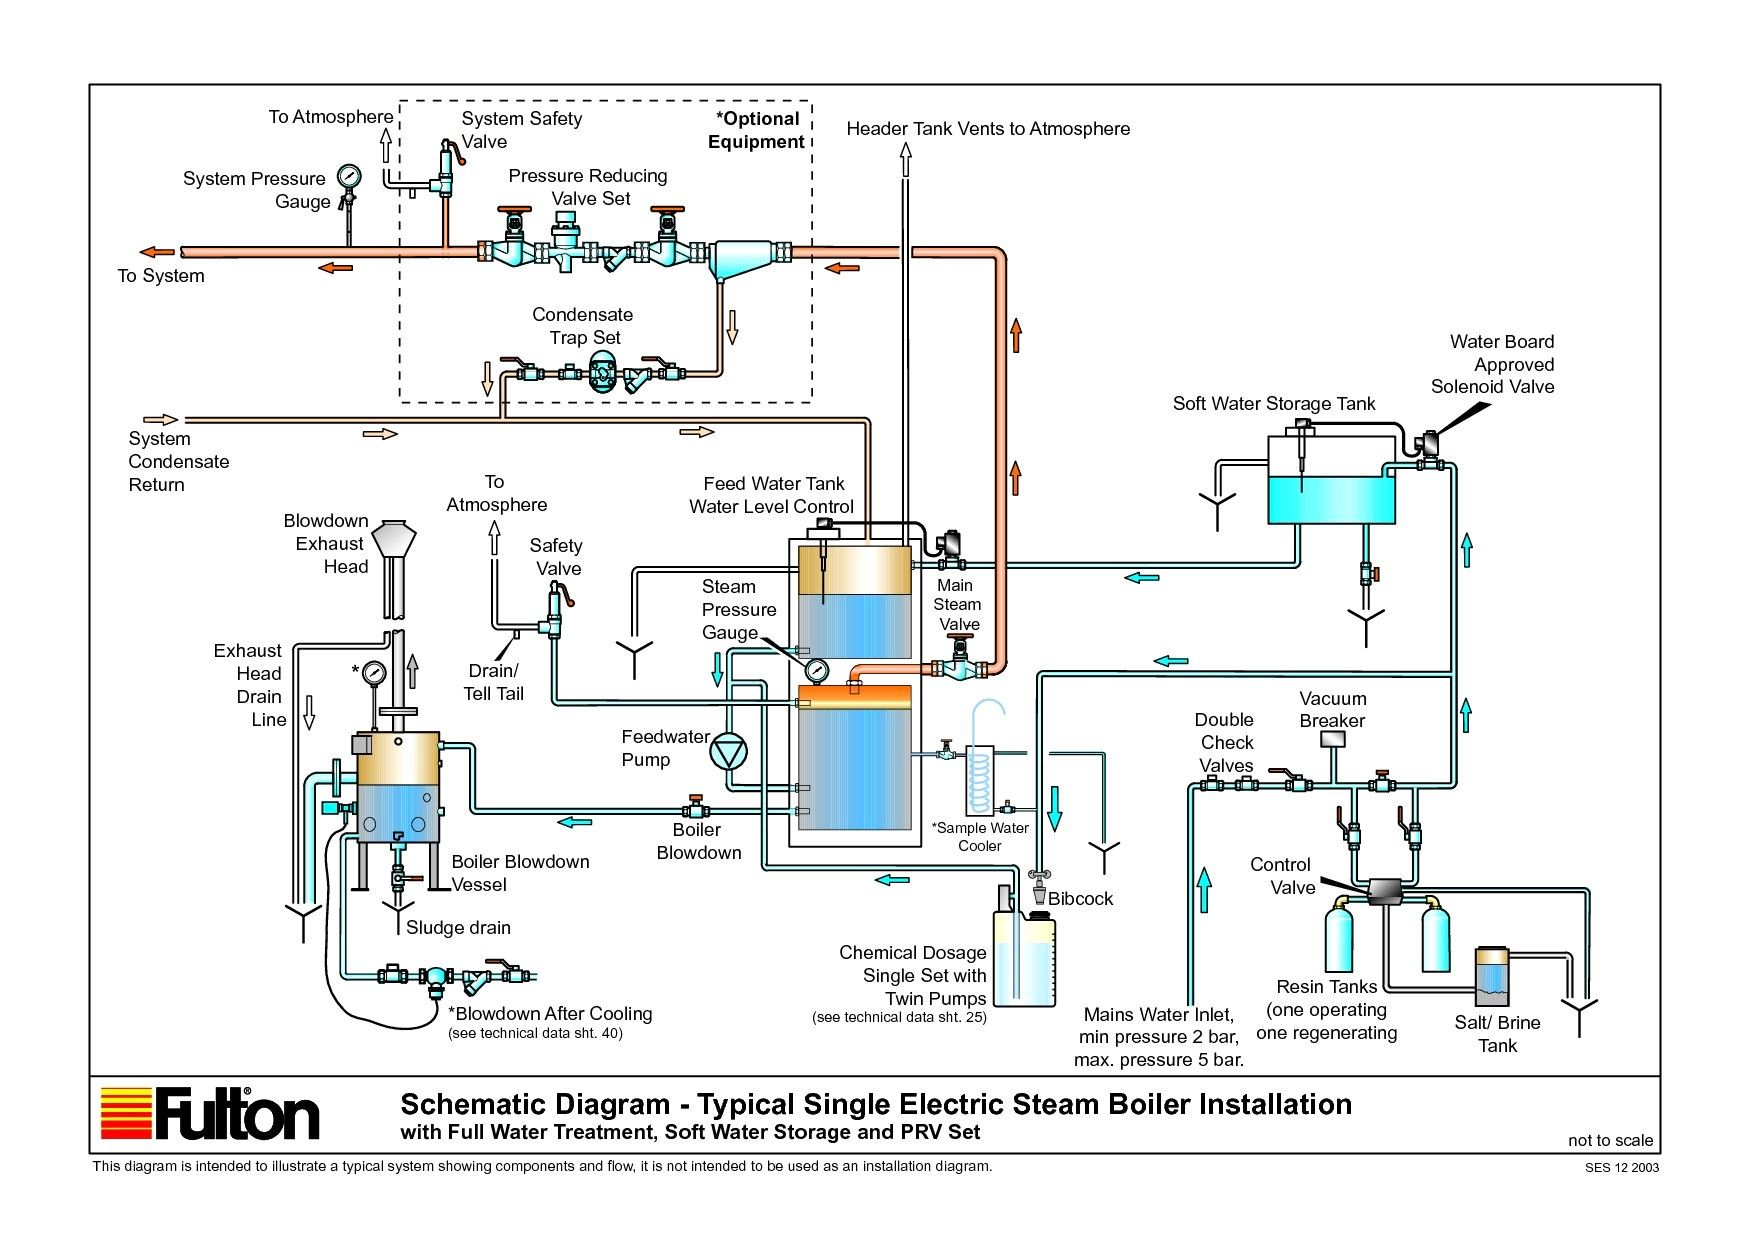 New Wiring Diagram For Central Heating Programmer Diagram Diagramtemplate Diagramsample Check More At Https Servisi Co Wiring Diagram For Central Heating P